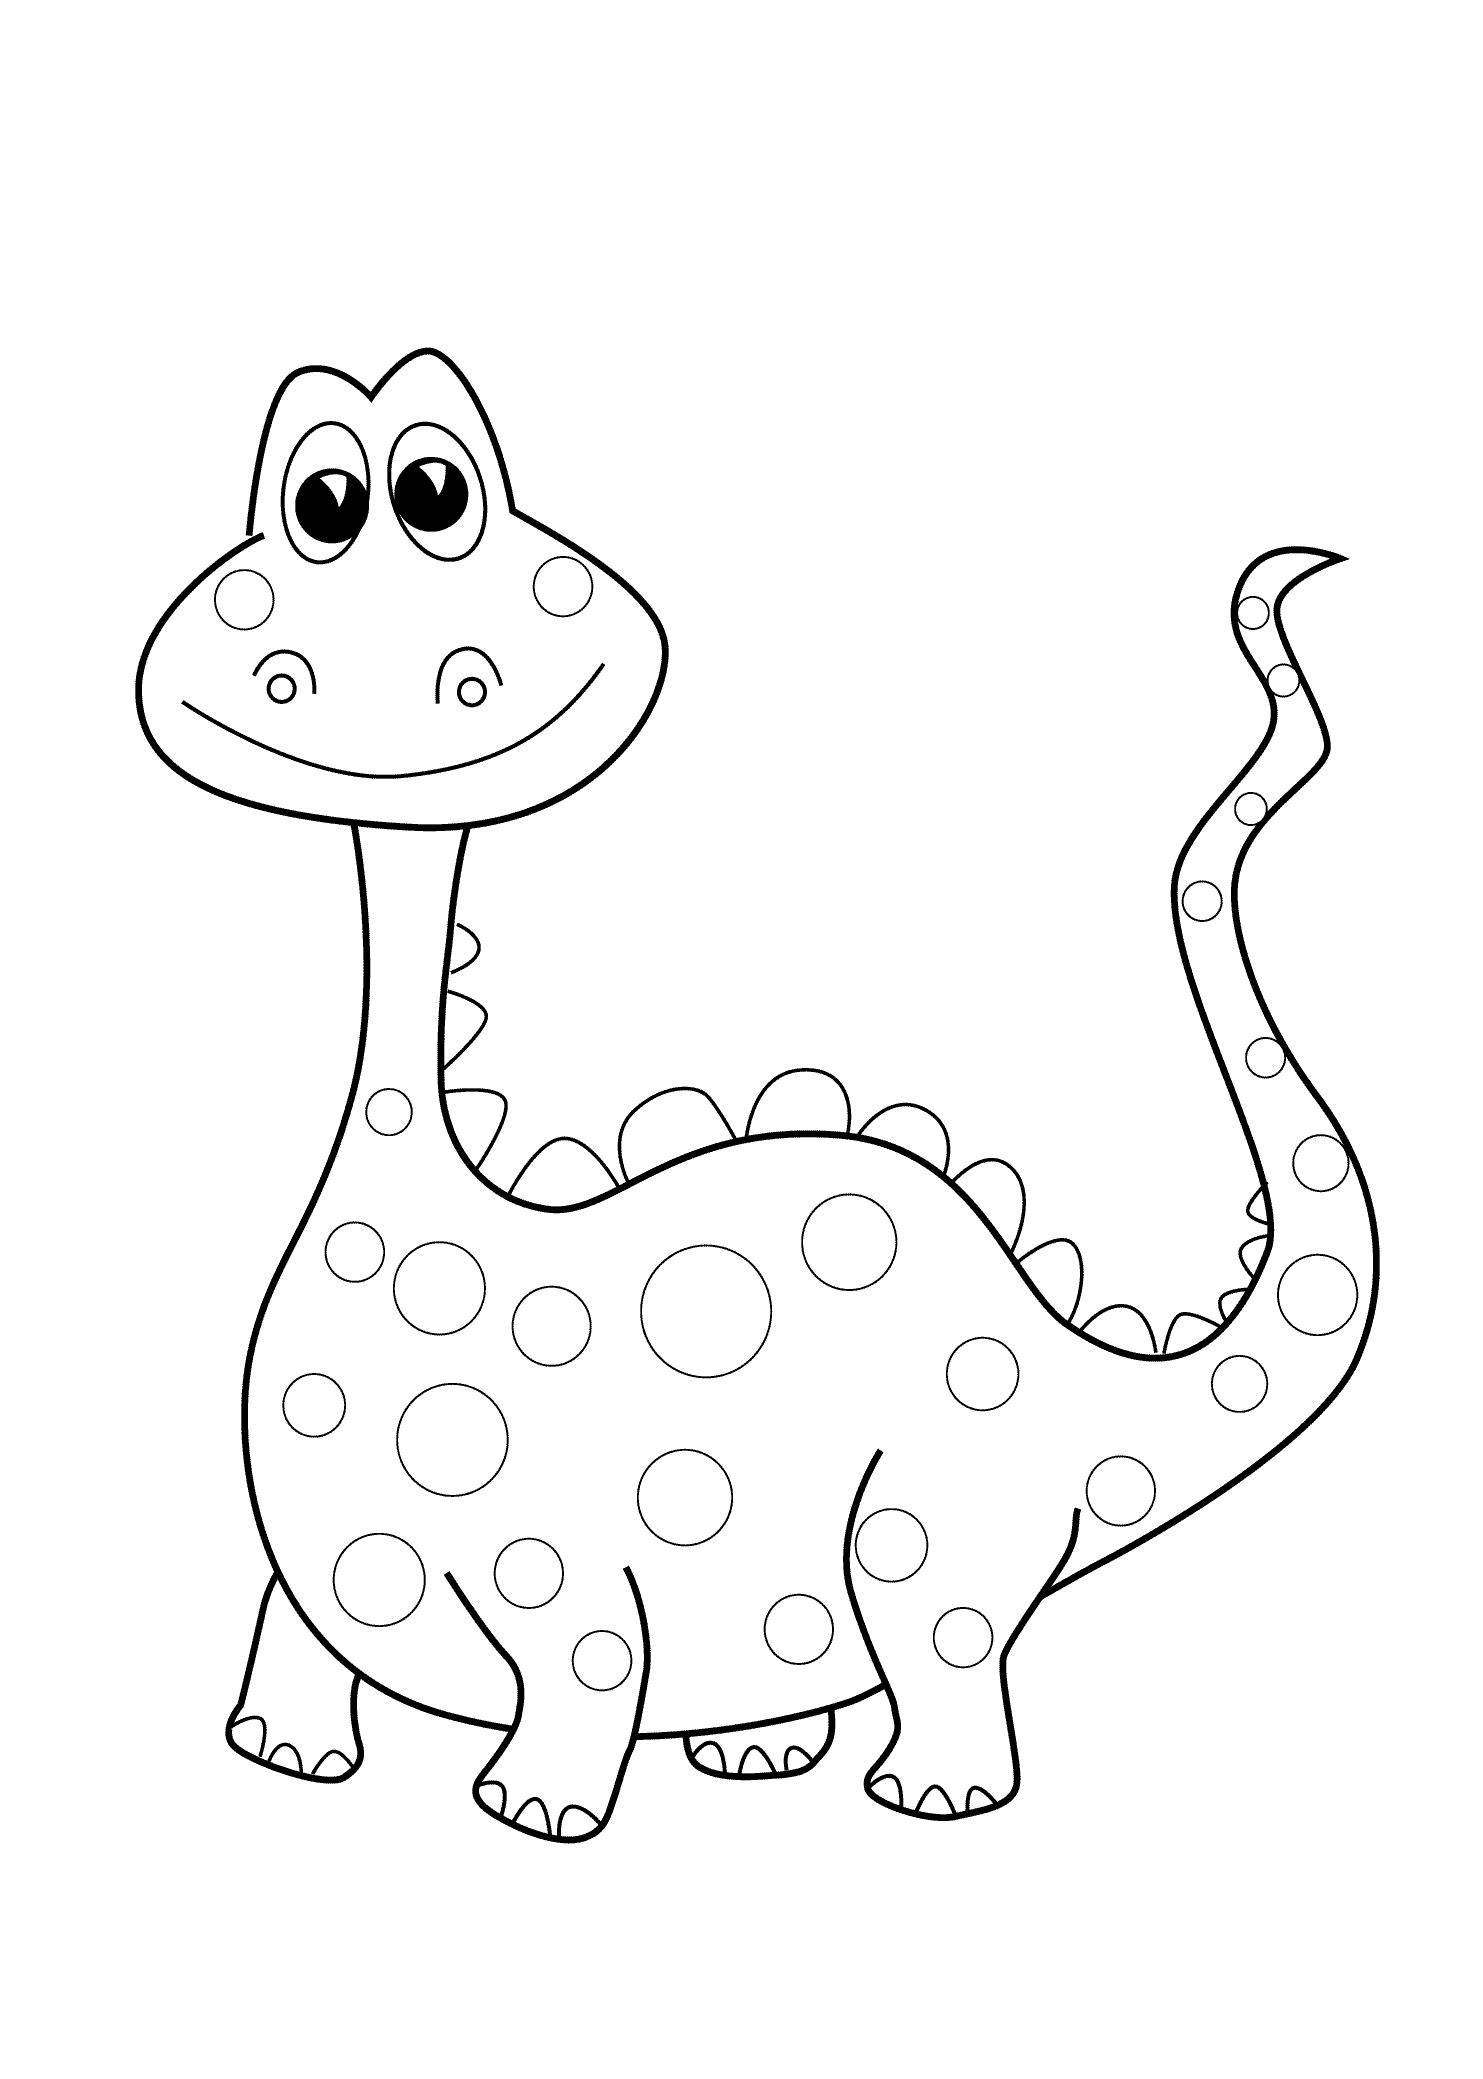 Preschool Dinosaur Coloring Pages Printable Dinosaur Coloring Pages Preschool Coloring Pages Dinosaur Coloring Sheets